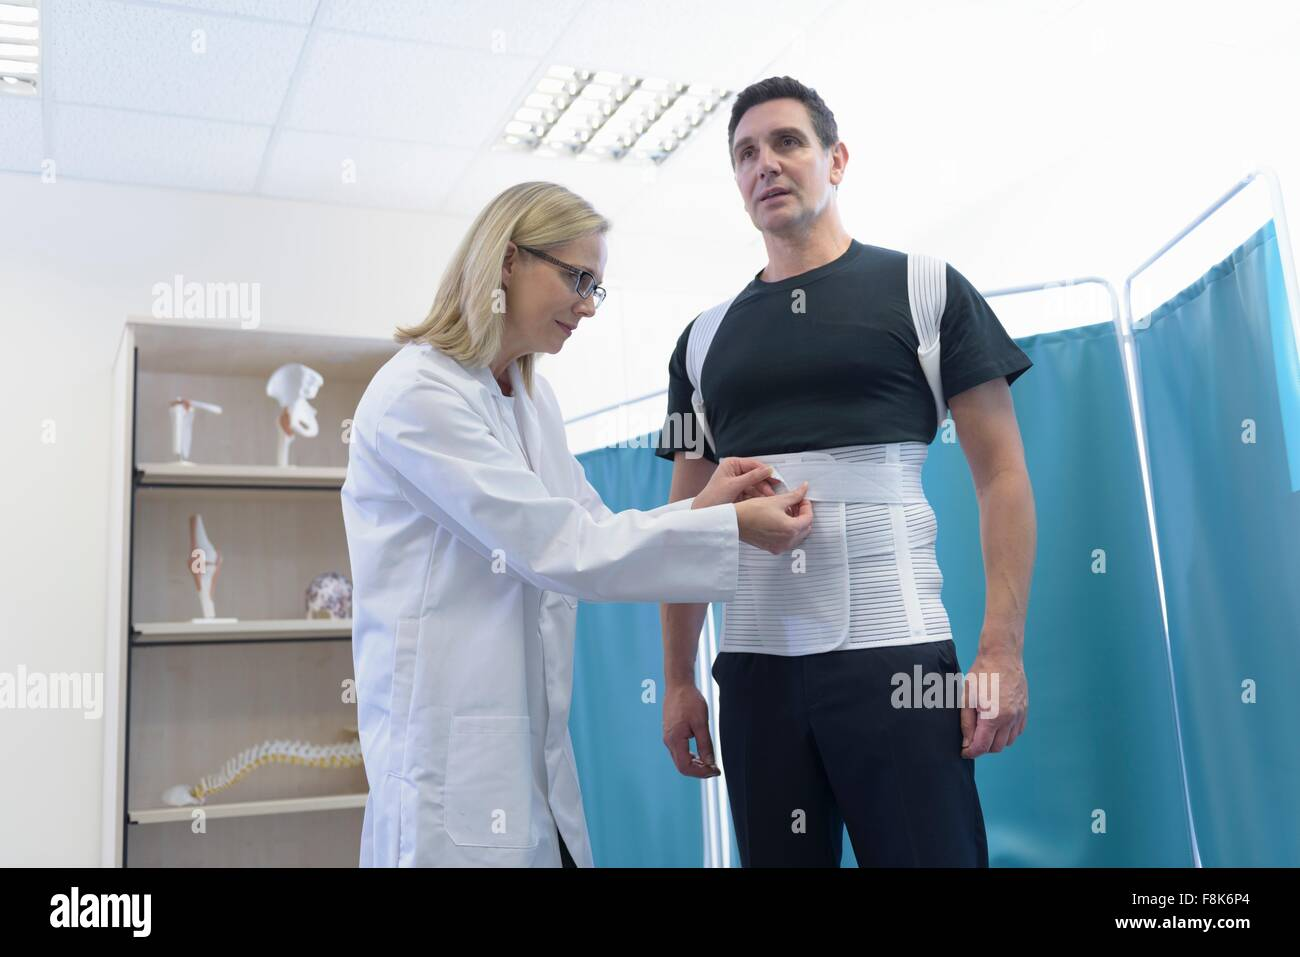 Doctor fits orthopaedic support to patient - Stock Image